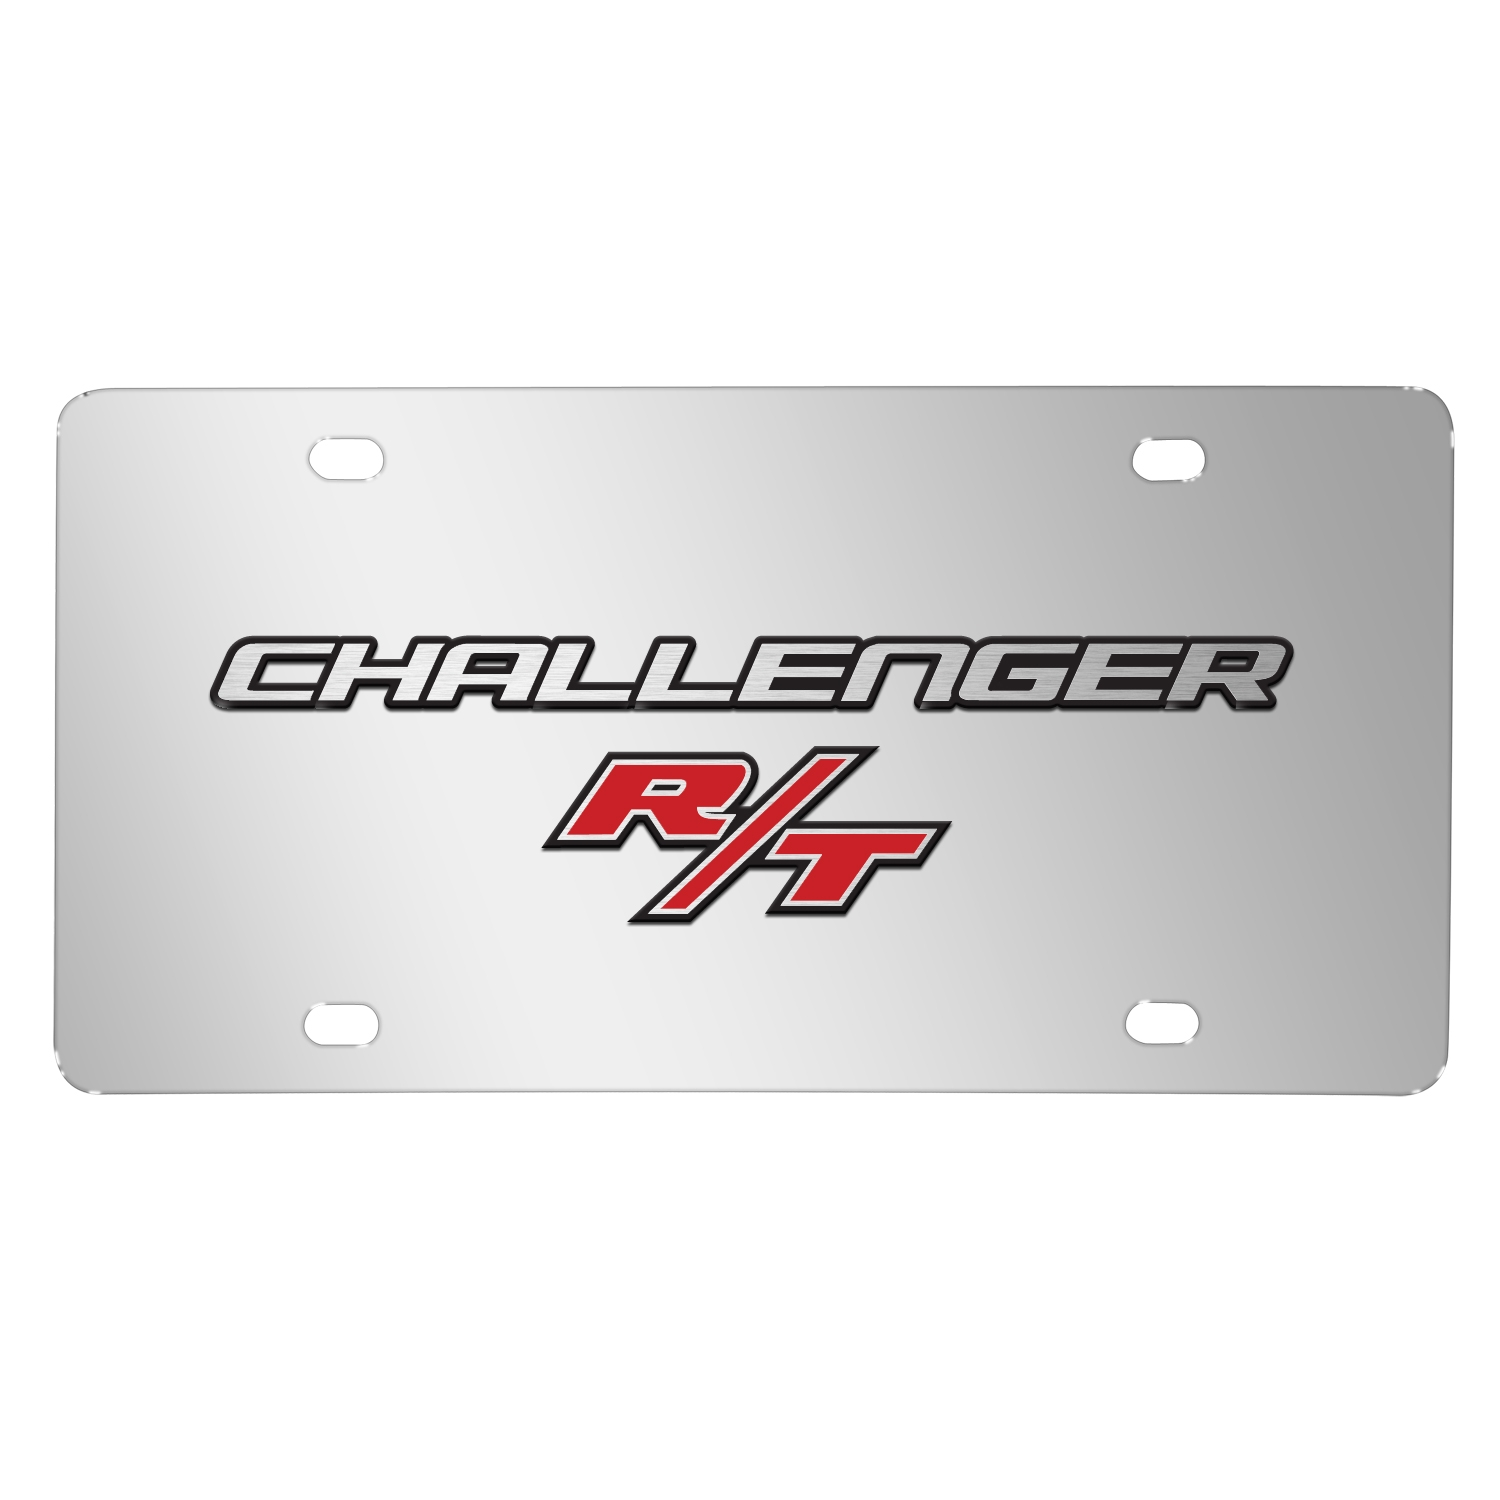 Dodge Challenger R/T 3D Logo on Chrome Stainless Steel License Plate